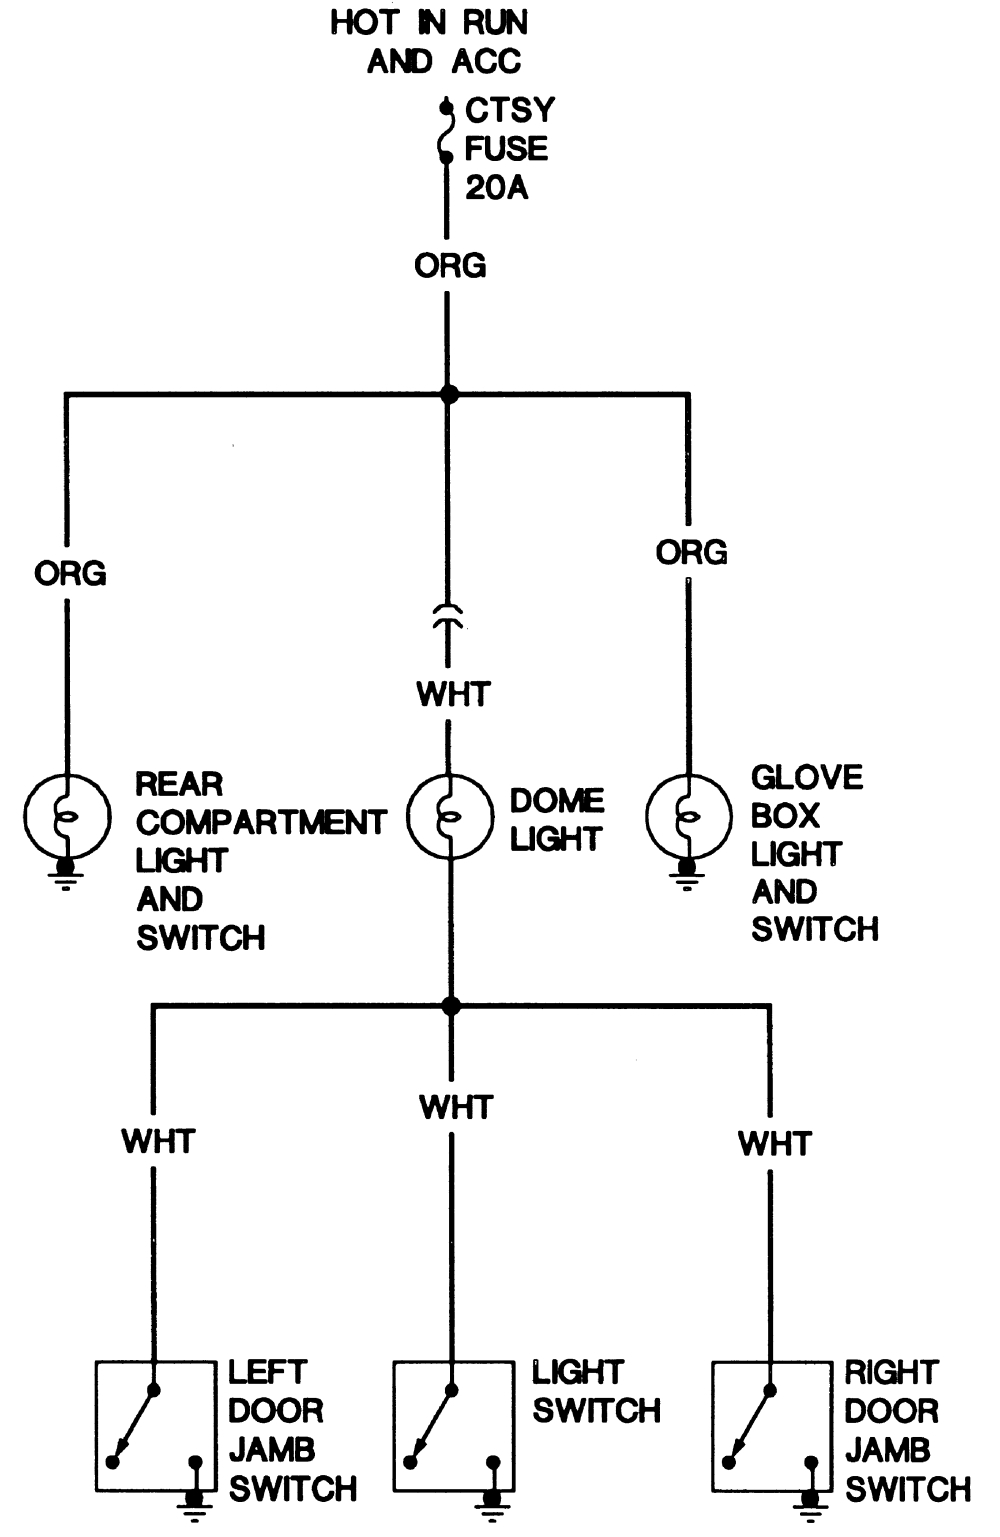 door jamb switch wiring diagram Download-door jamb switch wiring diagram Download Fig 6 a 5-s